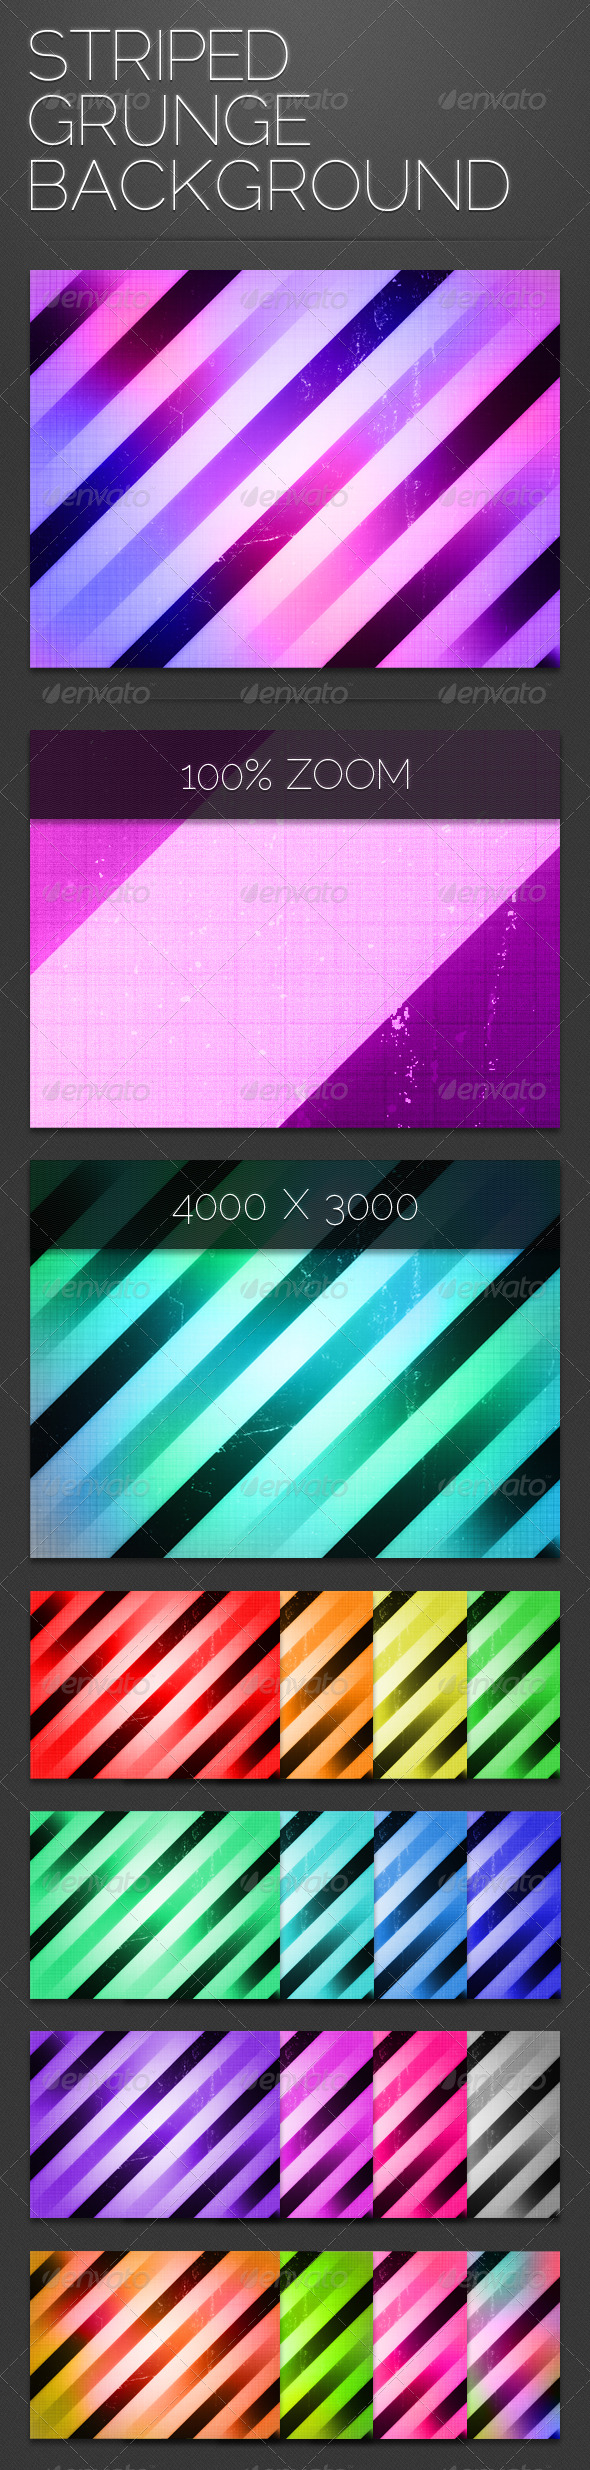 Striped Grunge Background - Abstract Backgrounds